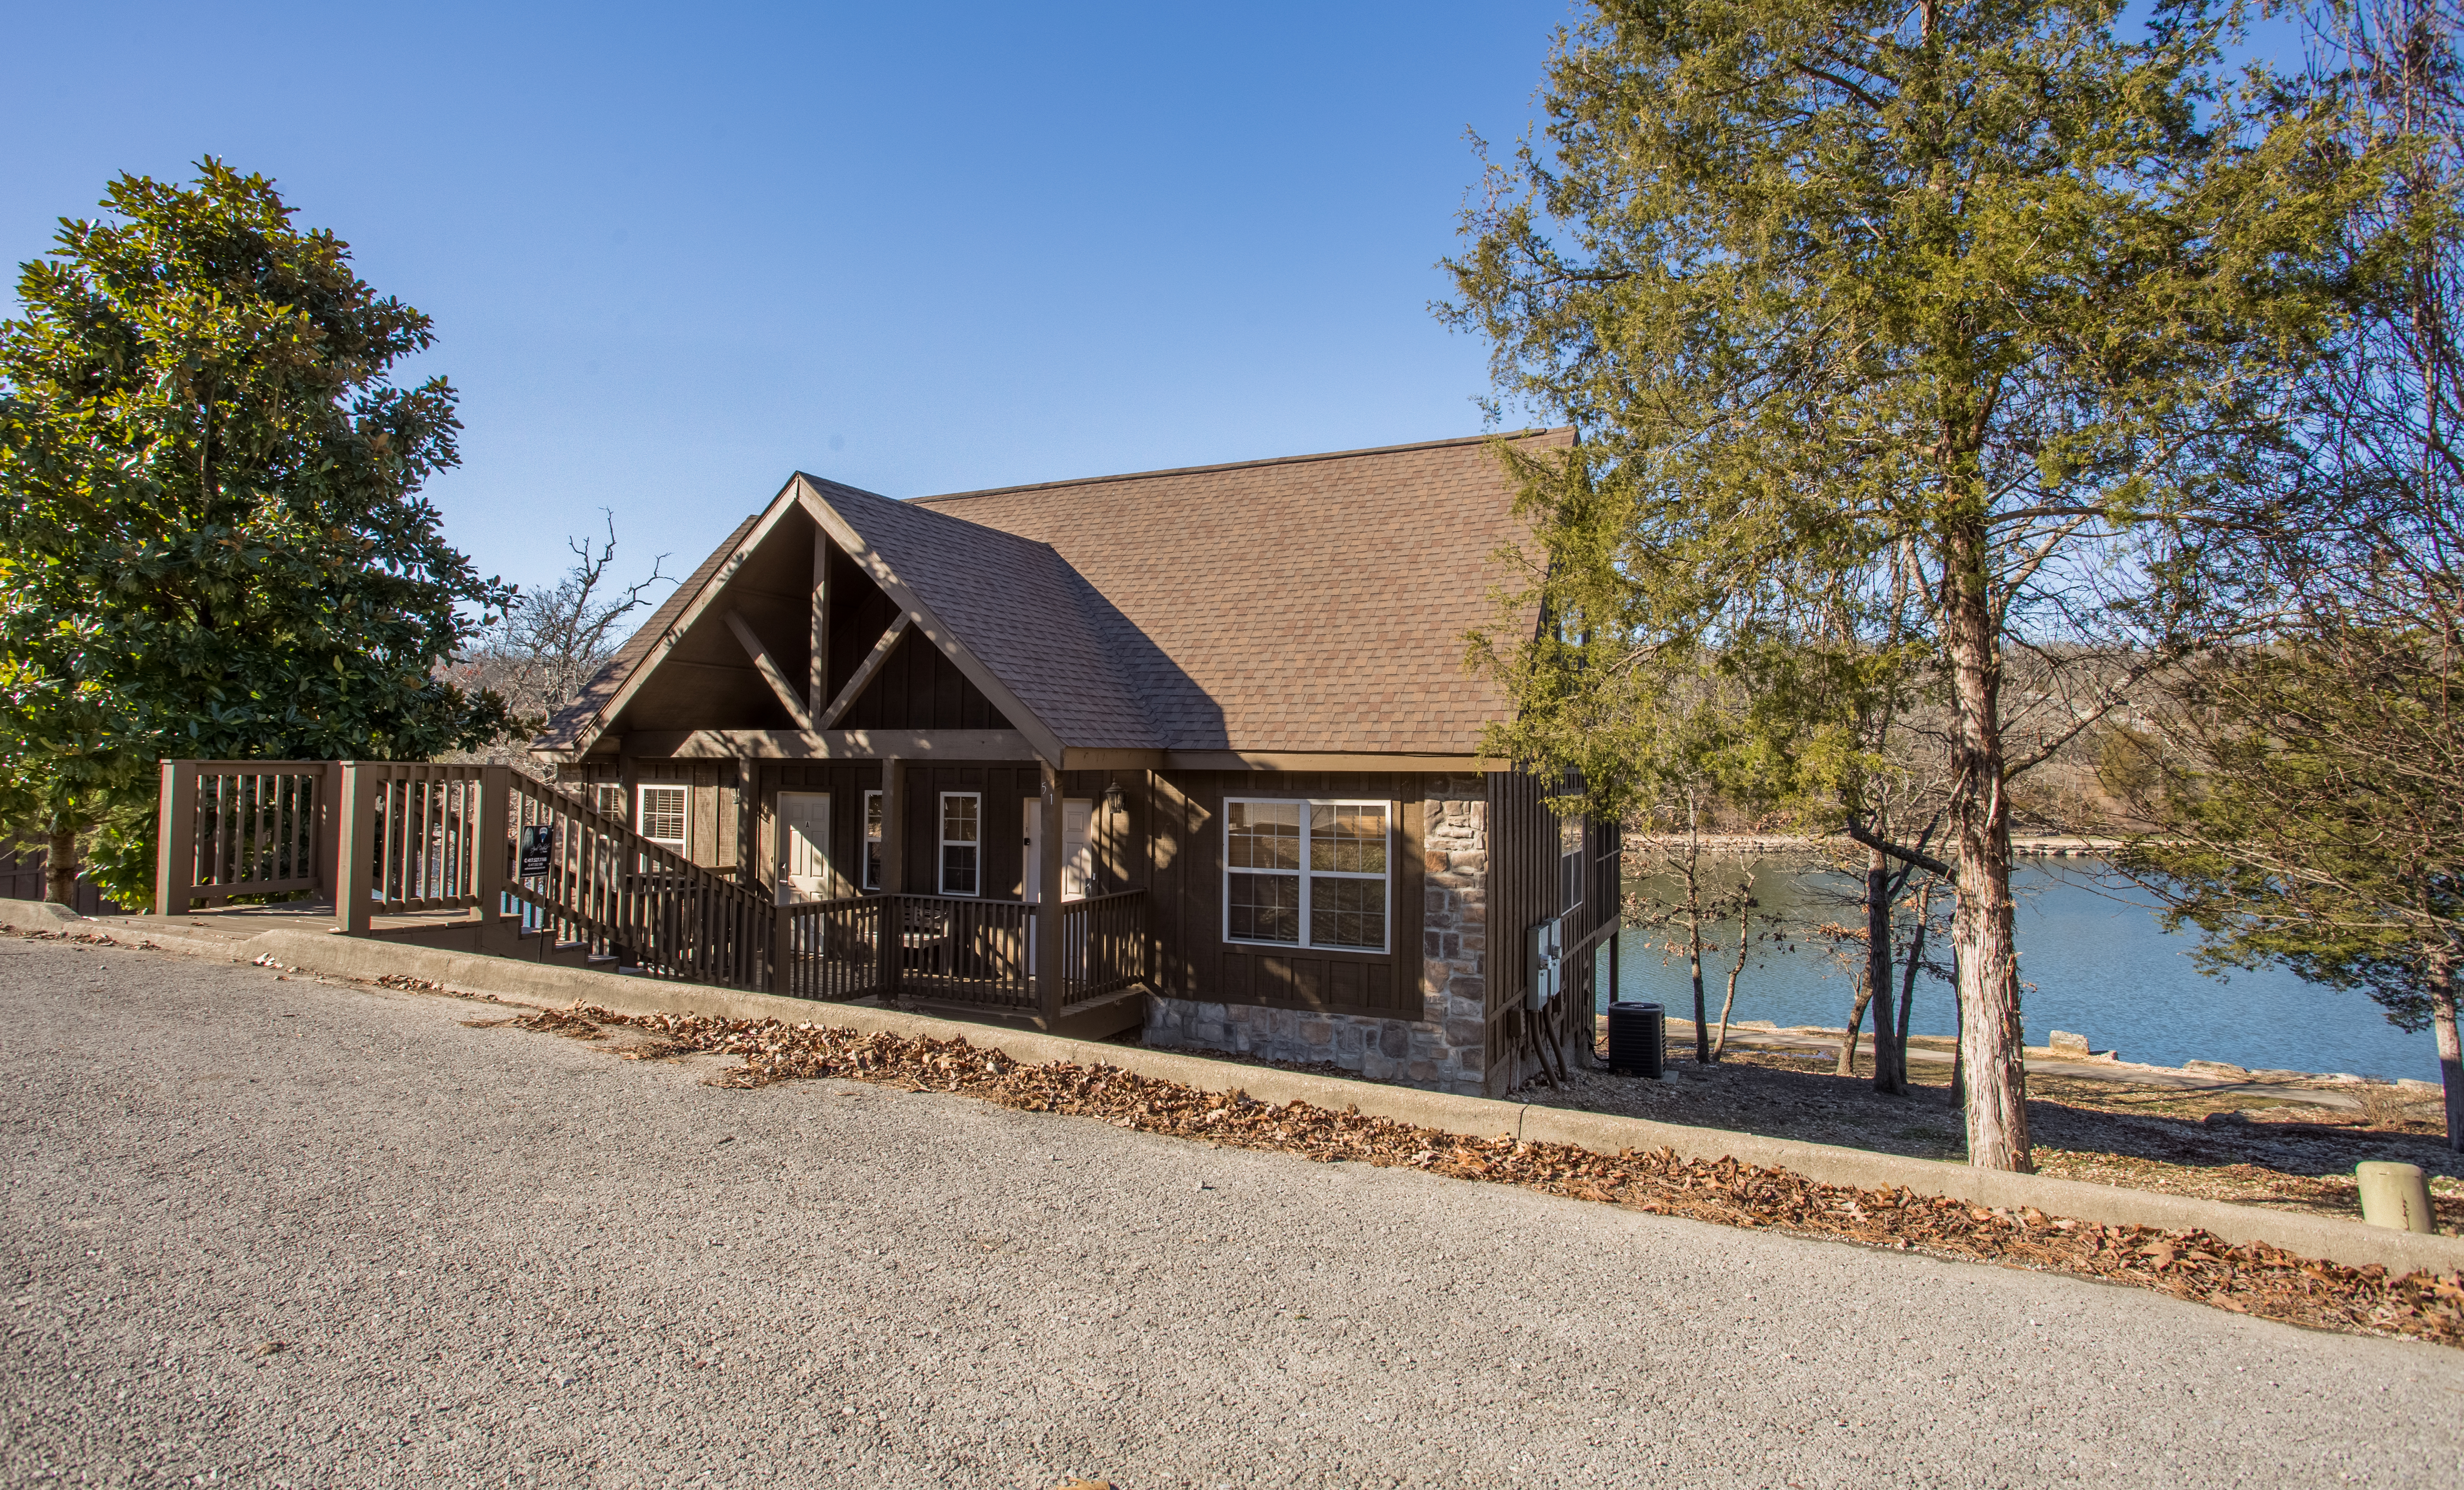 hills overlooking honeymoon lakeview firplace branson whispering luxury cabins log